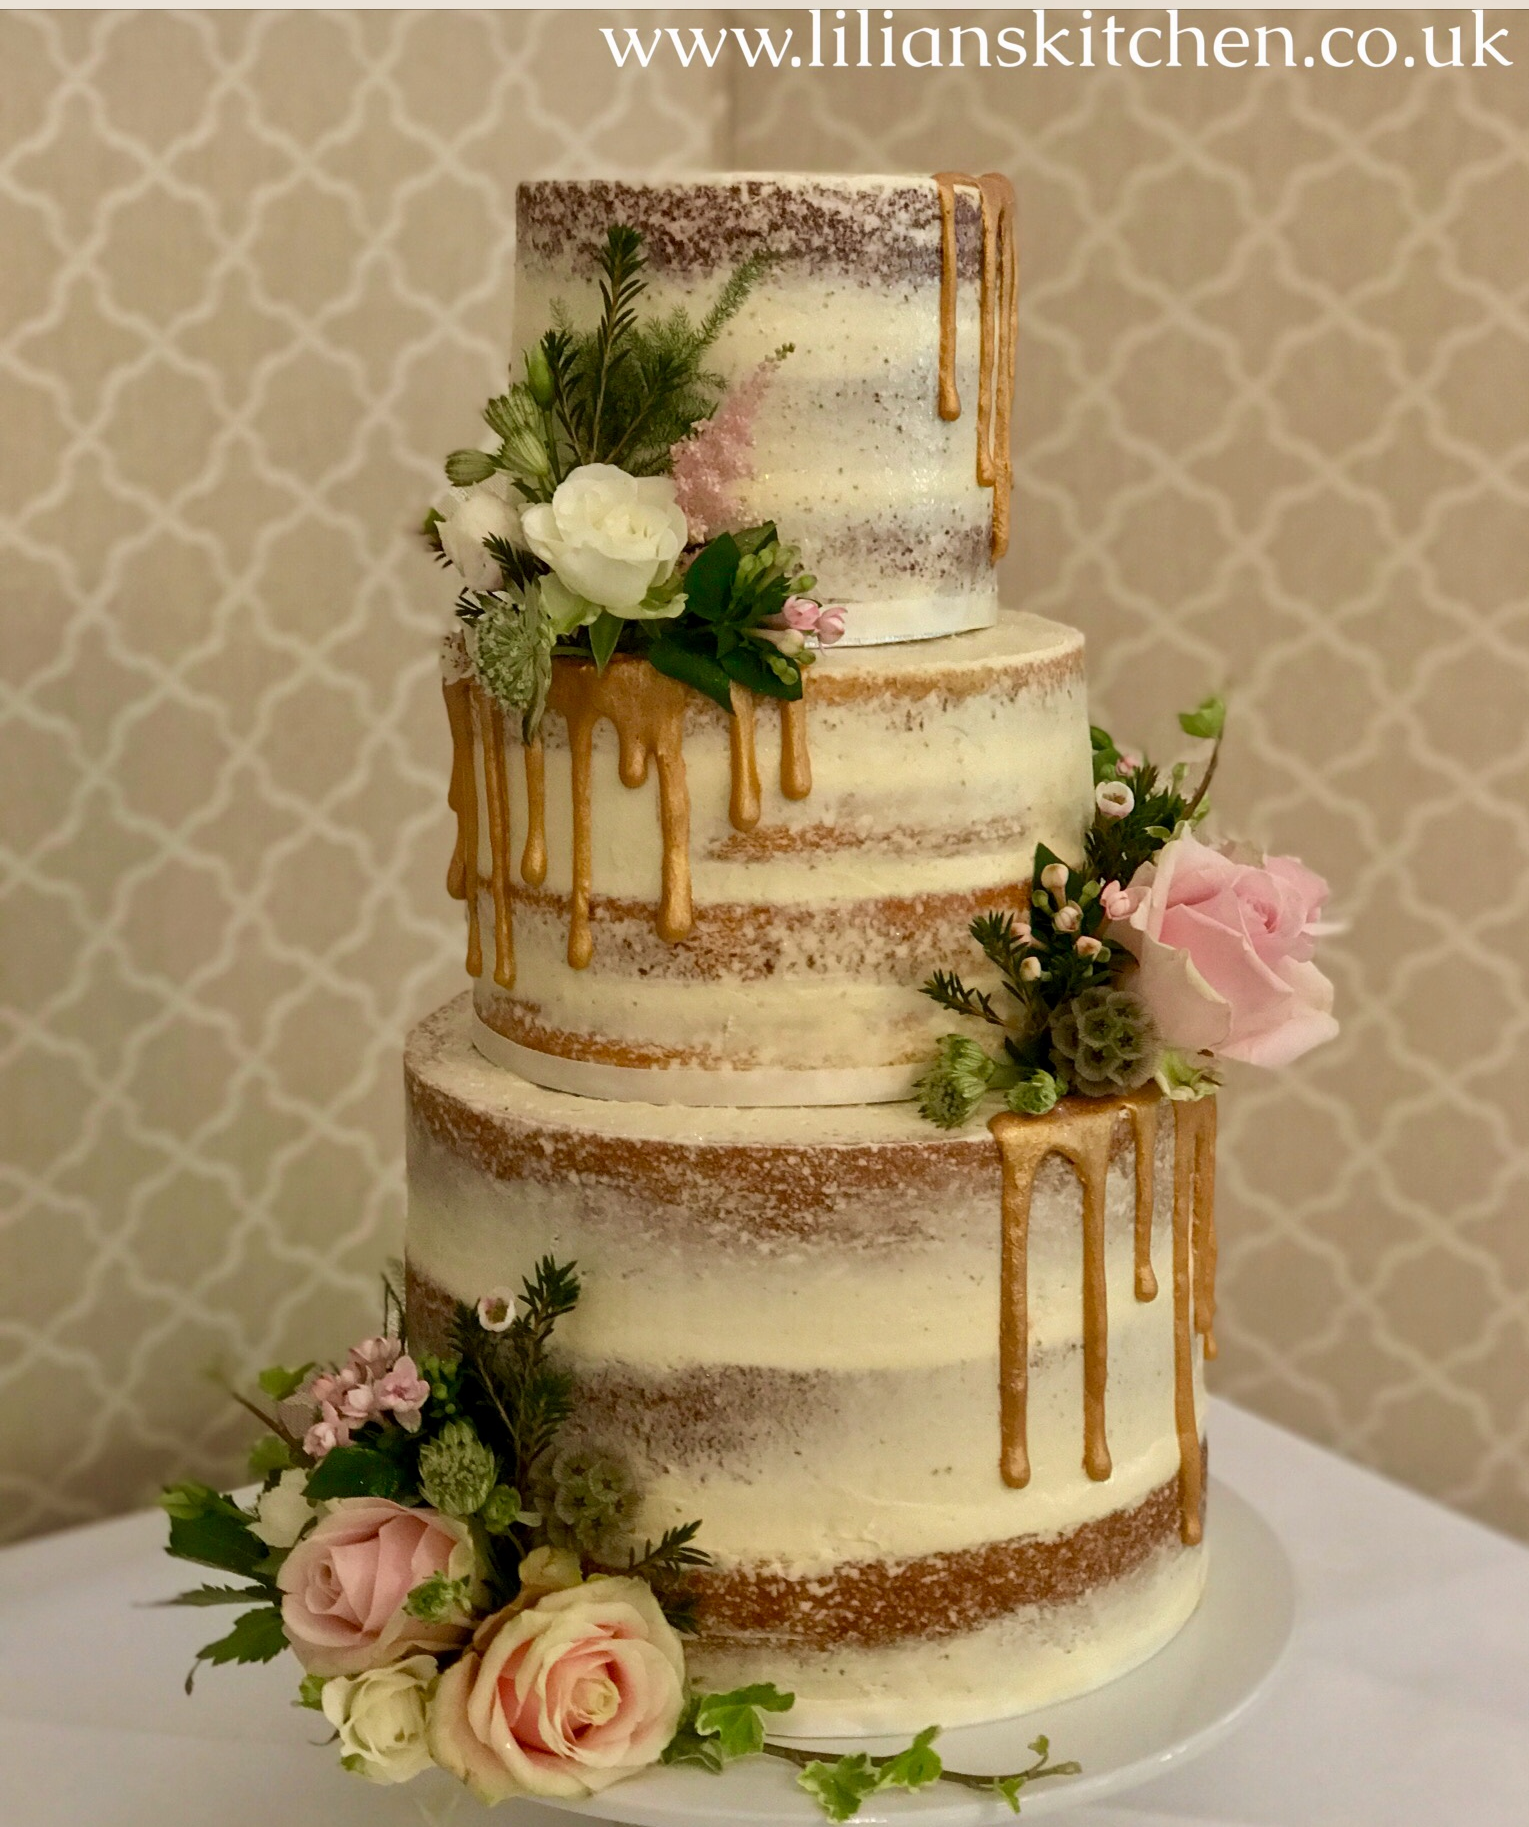 Gold Drip Wedding Cake _edited